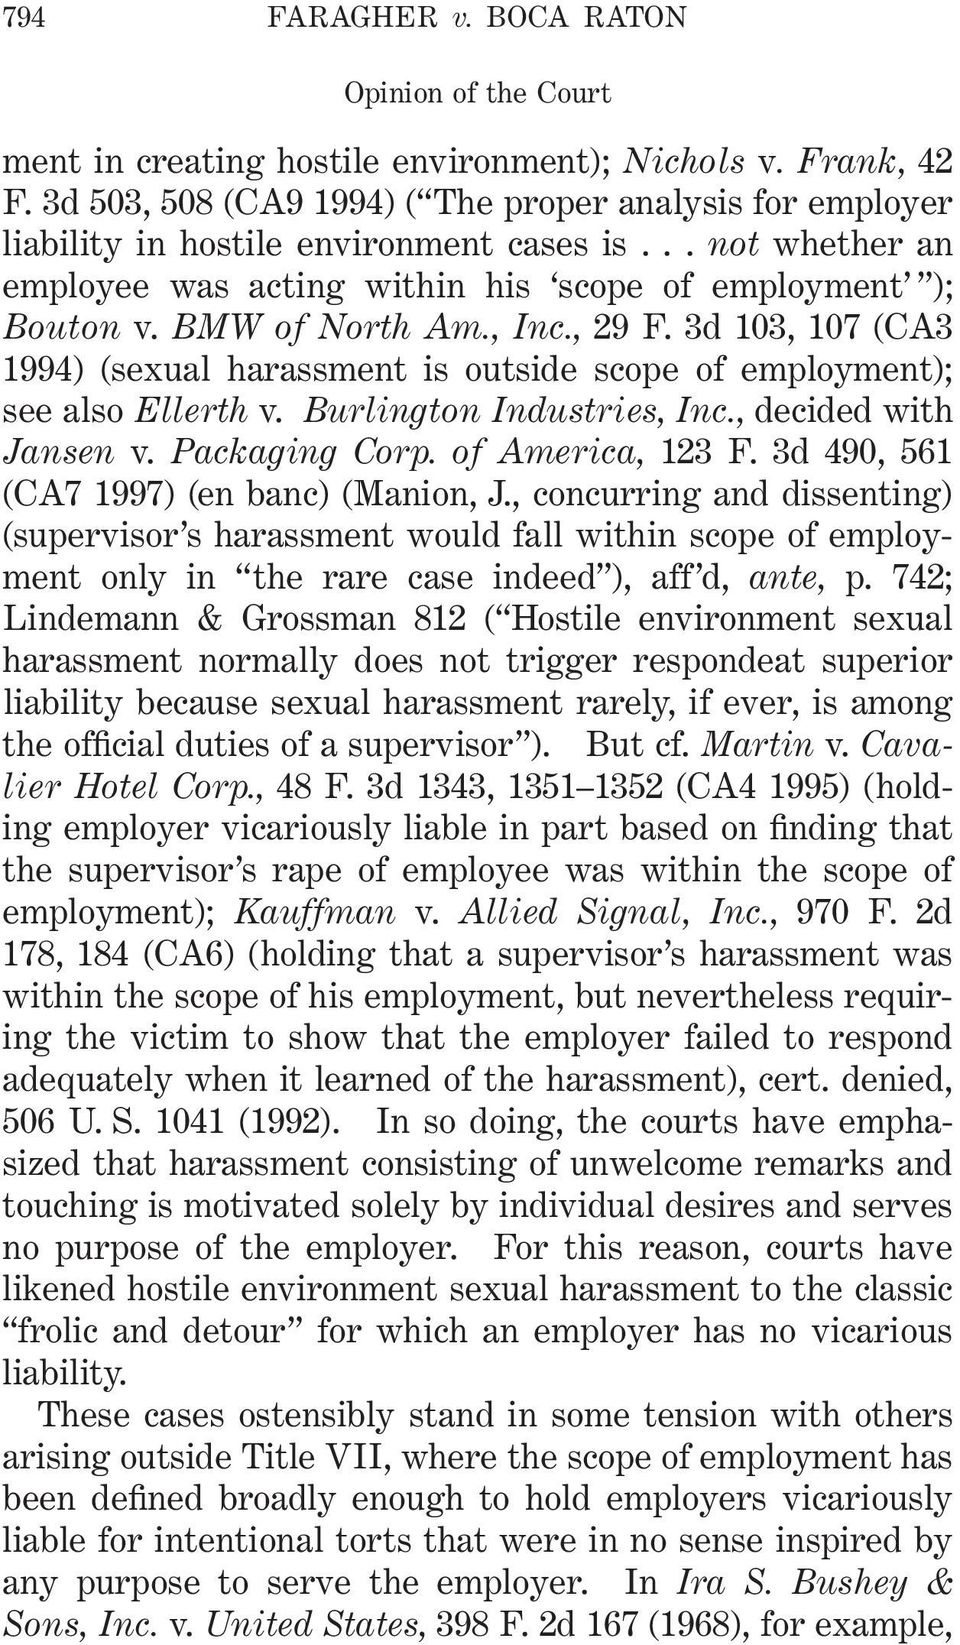 3d 103, 107 (CA3 1994) (sexual harassment is outside scope of employment); see also Ellerth v. Burlington Industries, Inc., decided with Jansen v. Packaging Corp. of America, 123 F.